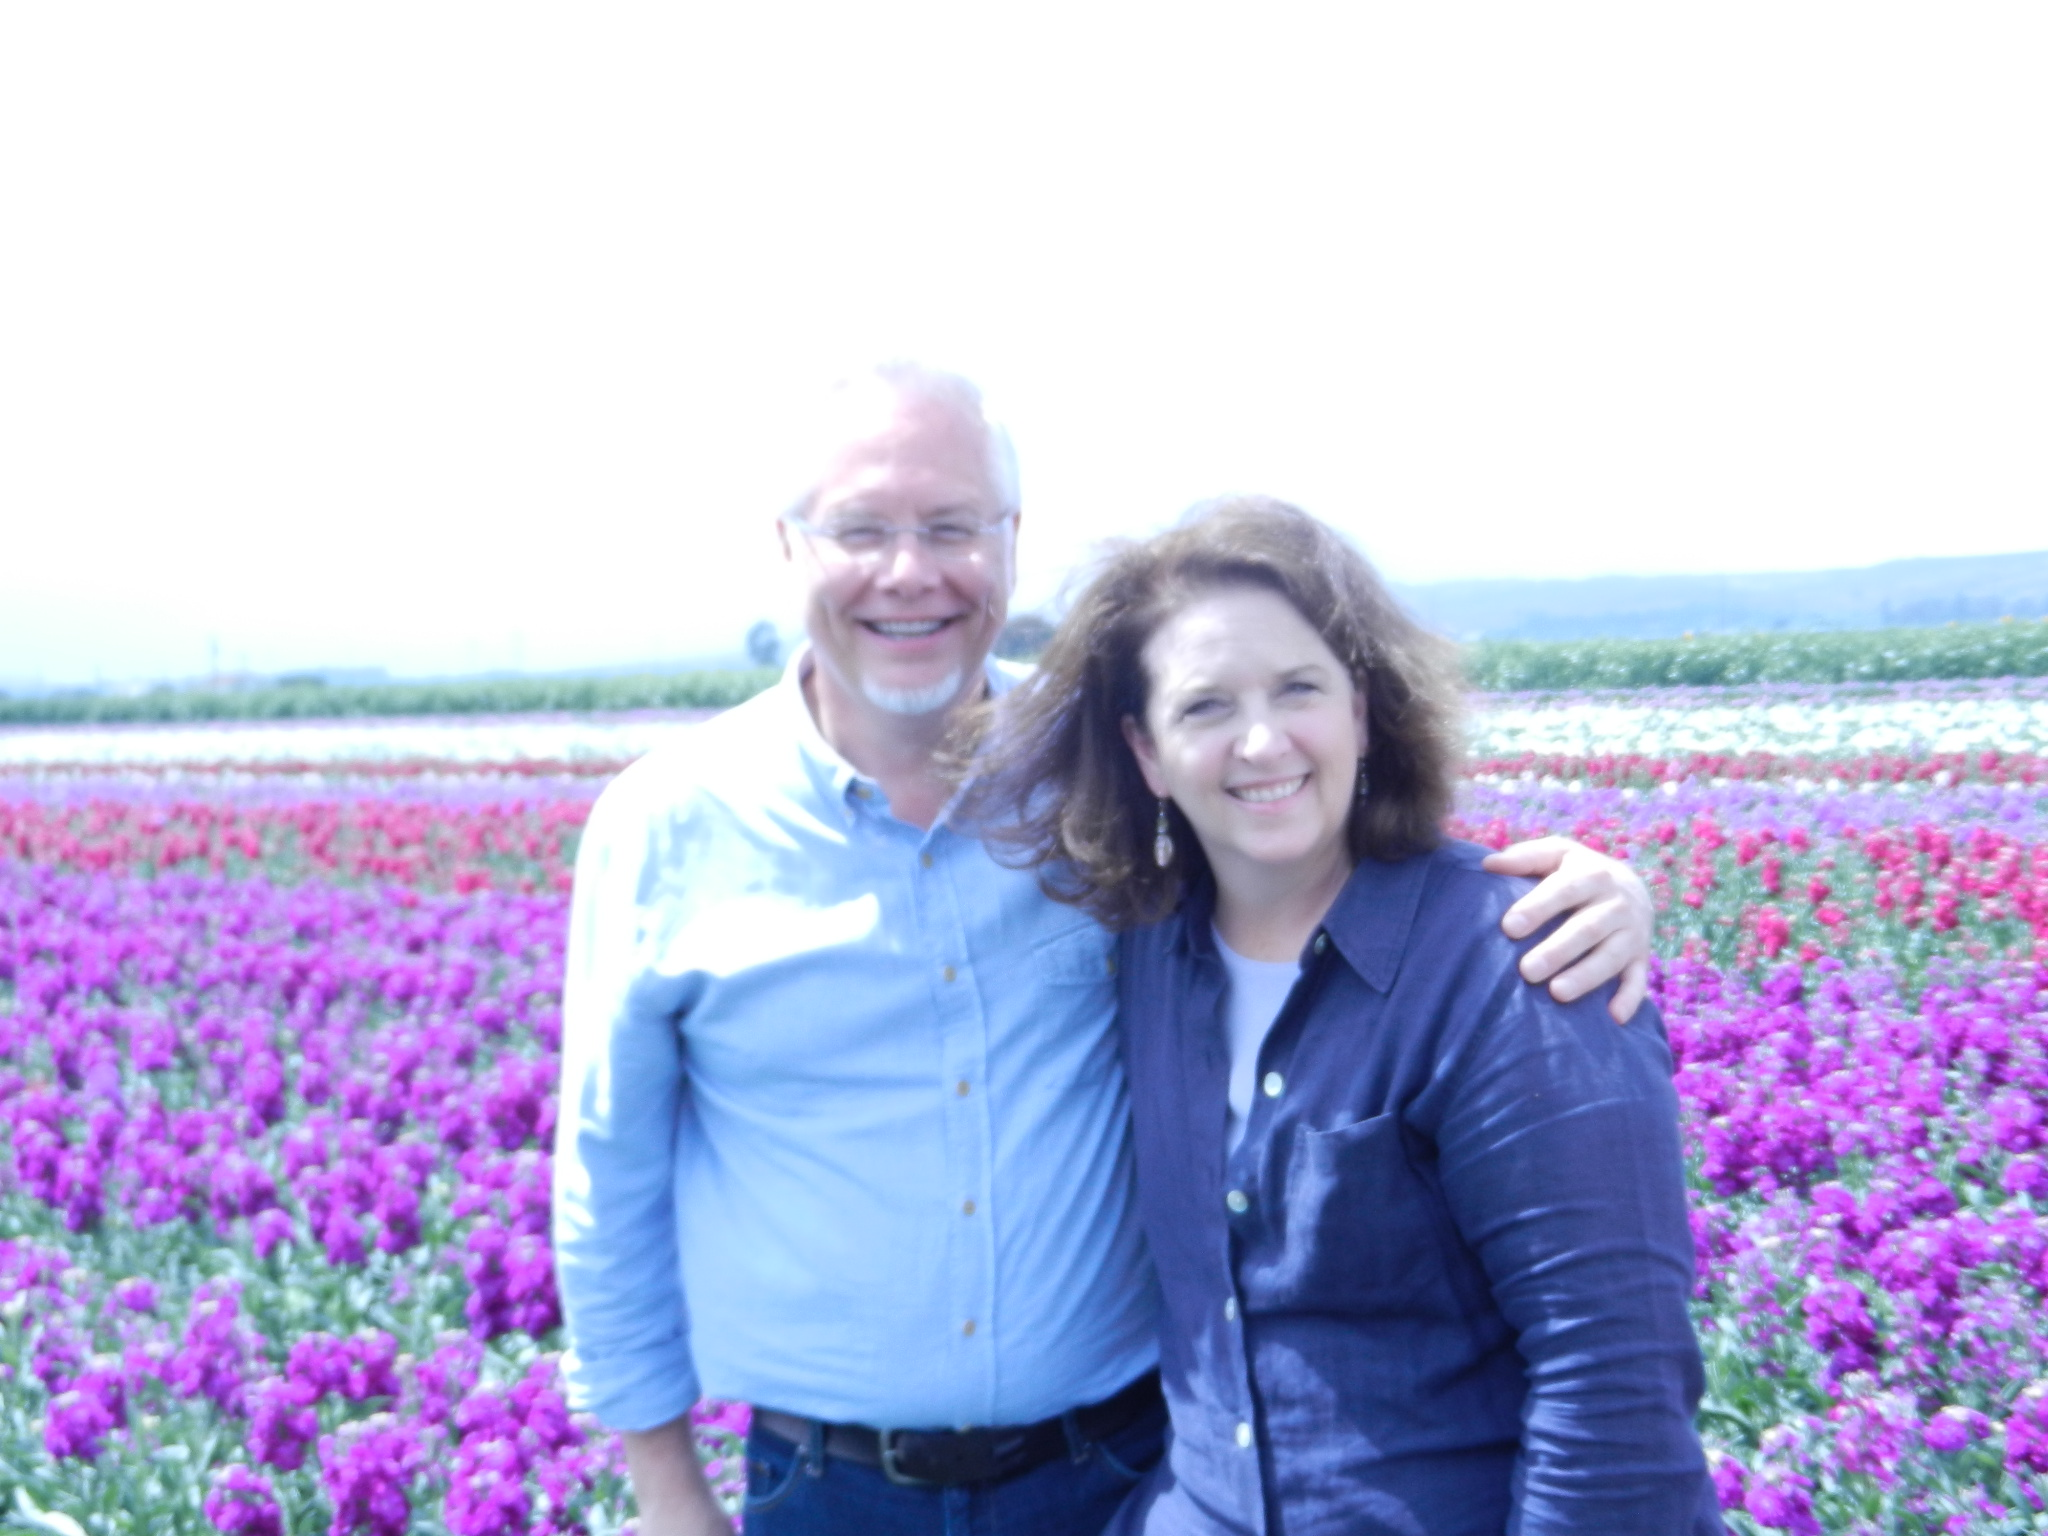 Debra and J in the Stock Fields at Ocean View Flowers during the NorCal 2014 Event!